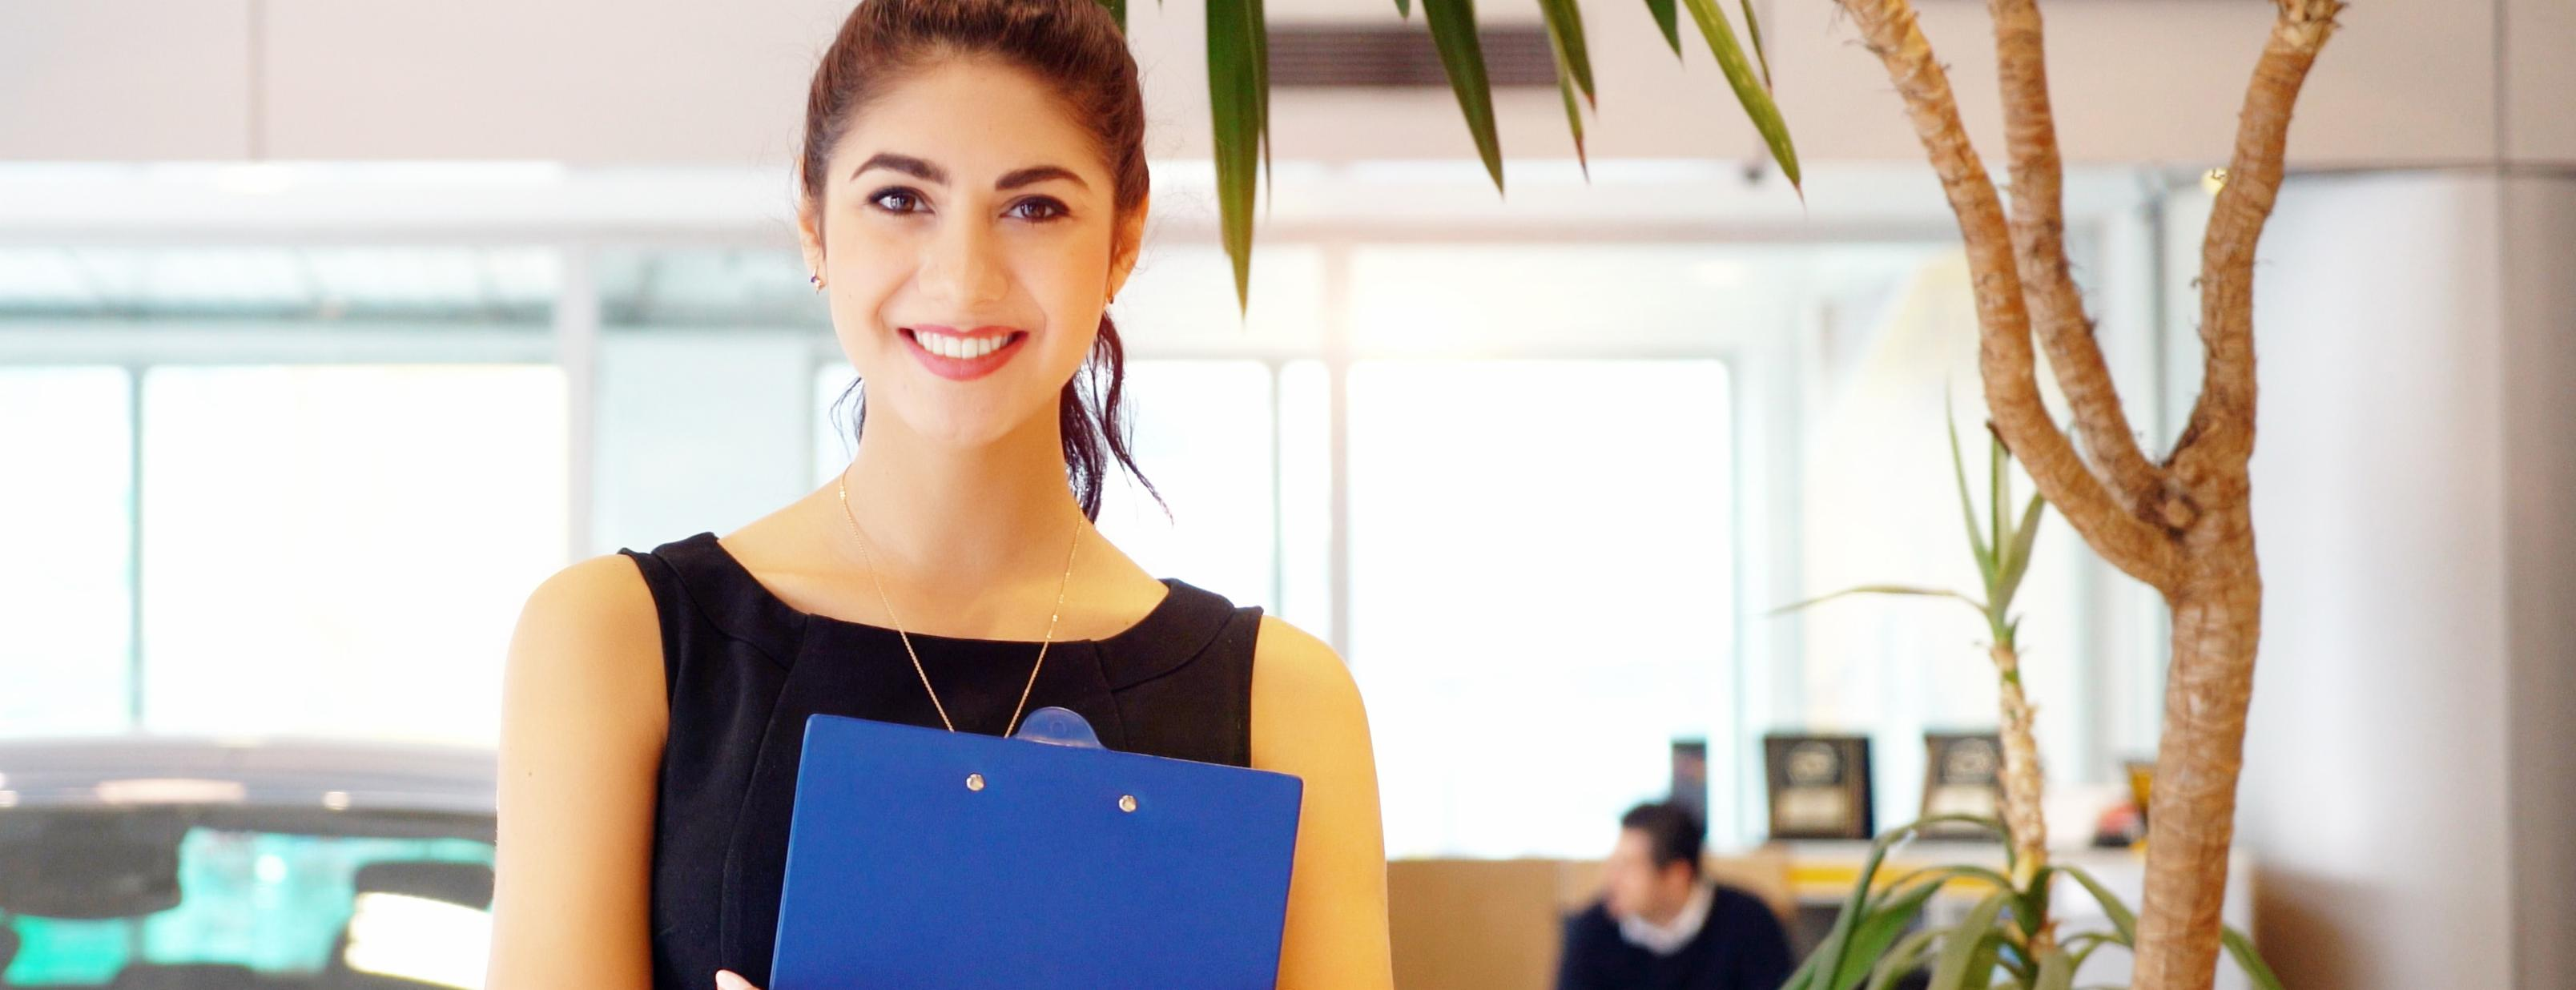 4 simple ways to improve guest services in your hotel - SiteMinder